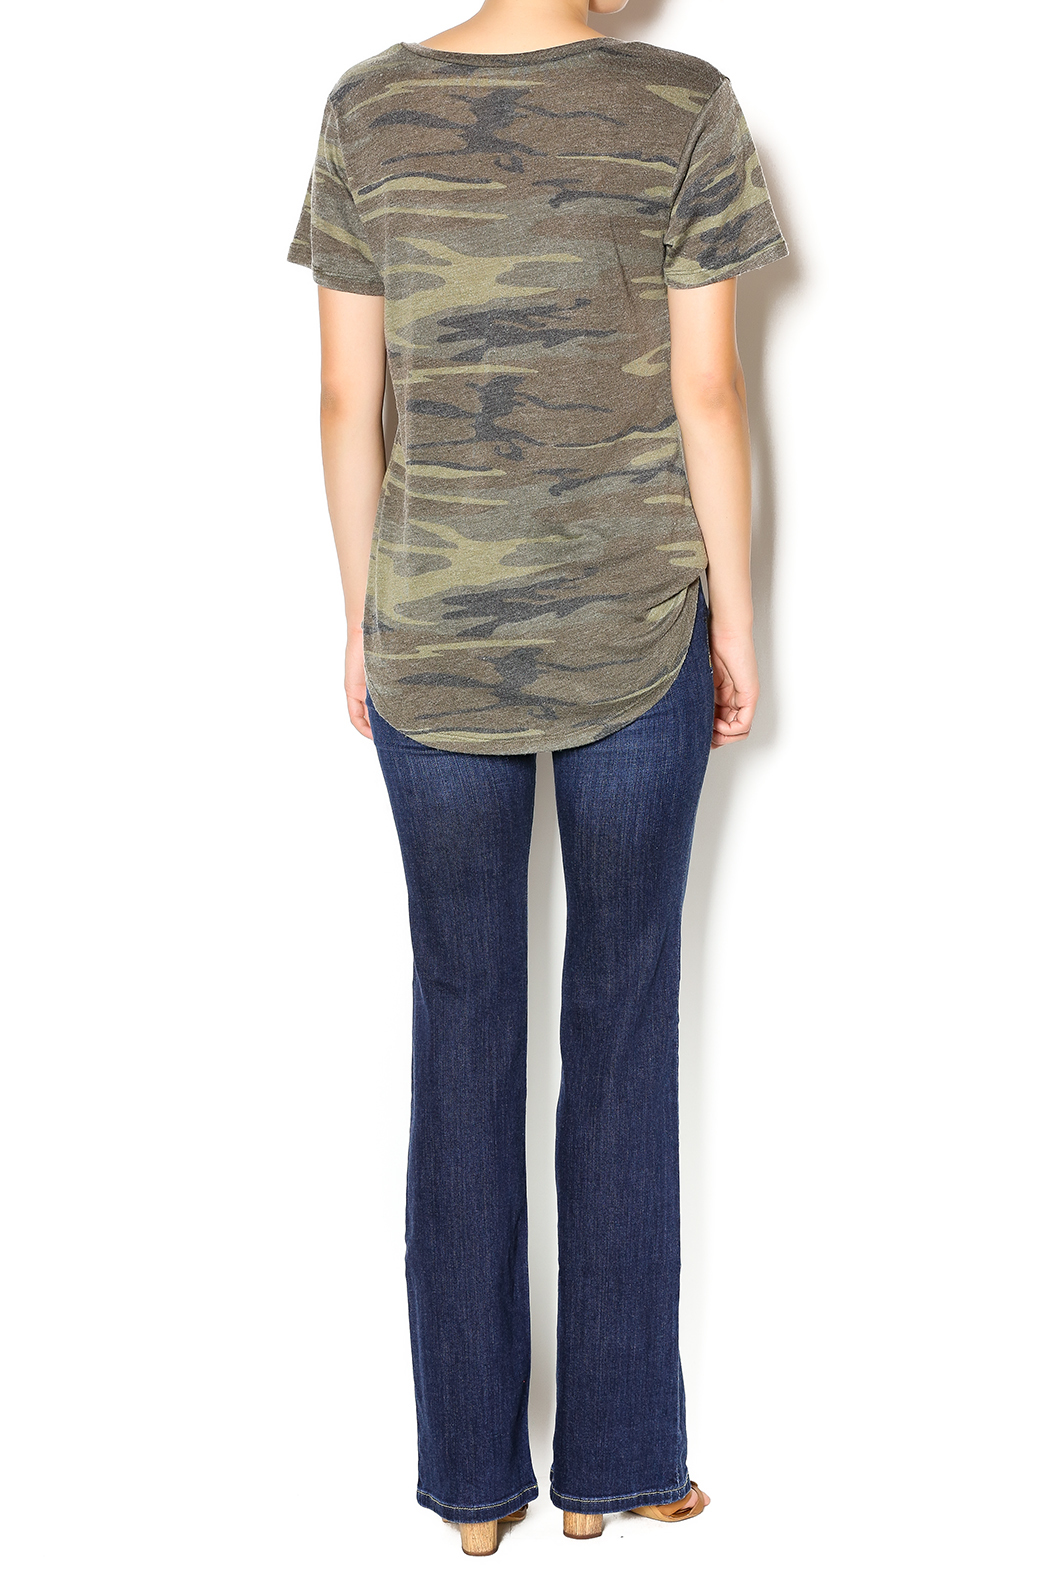 Zsupply Camo Pocket Tee - Side Cropped Image